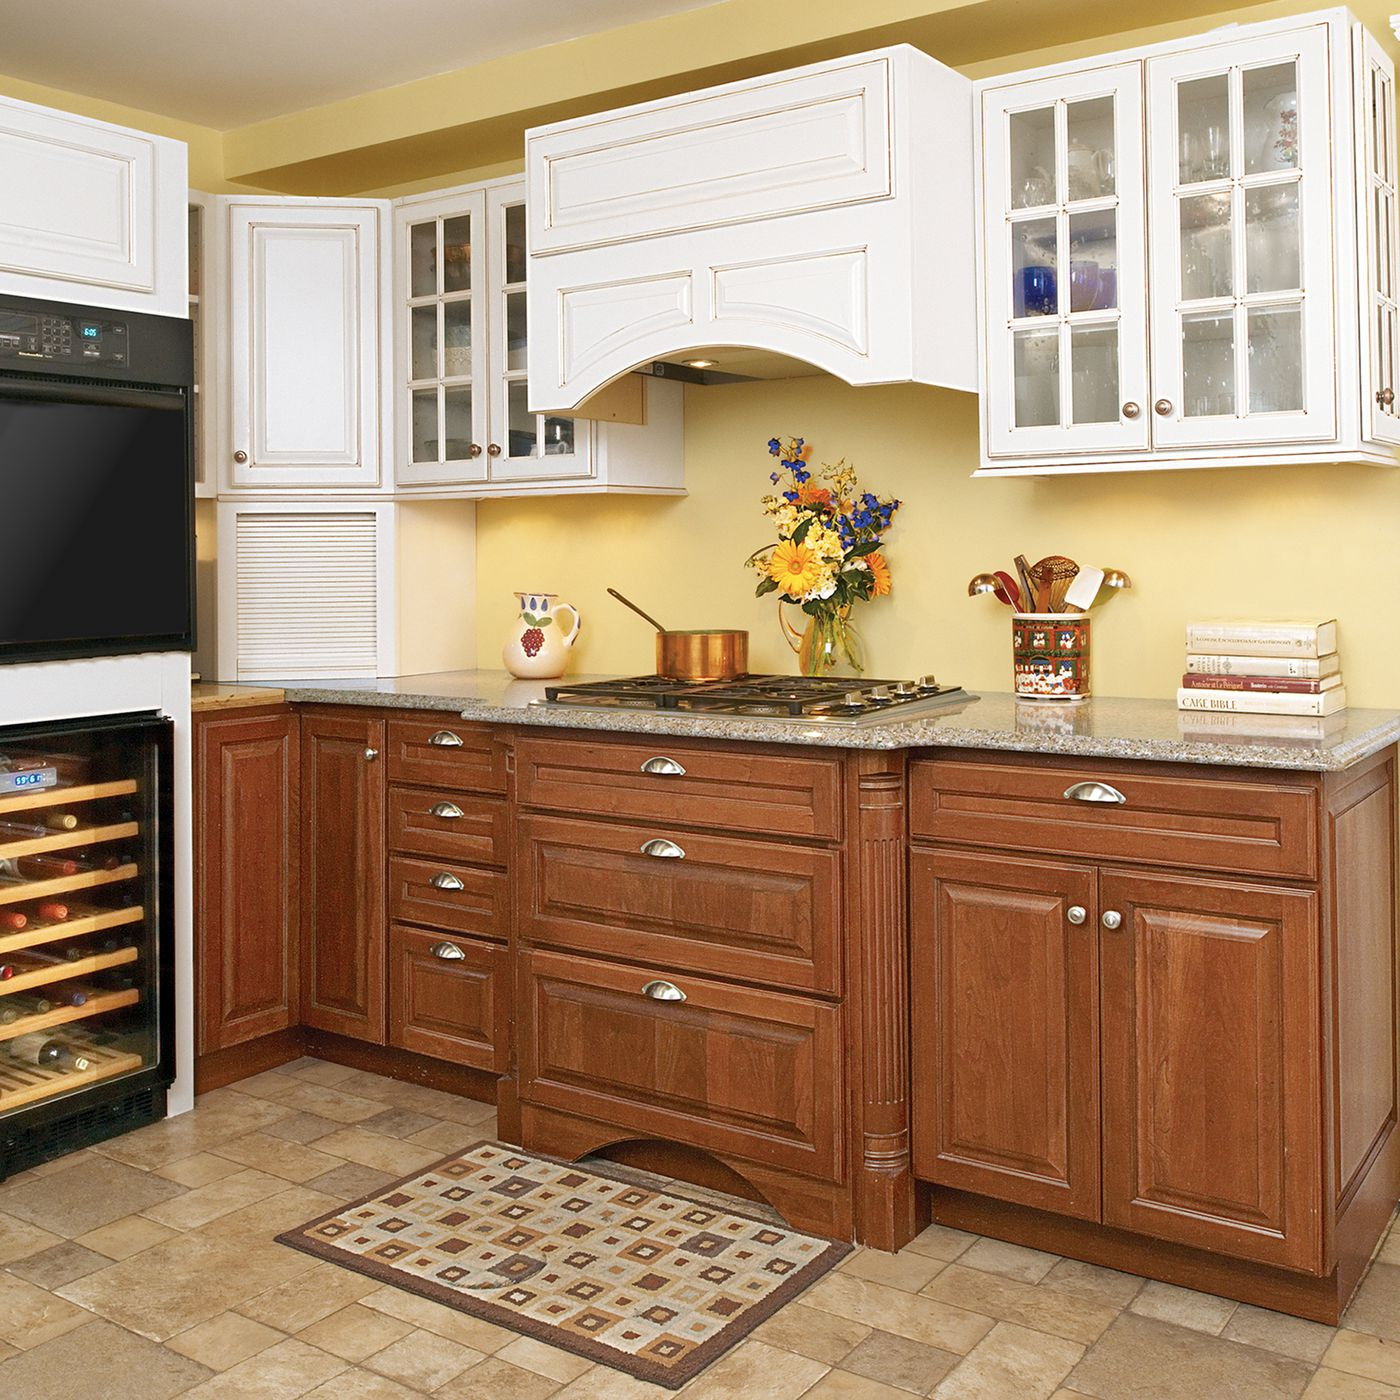 We Found Our Dream Kitchen On Craigslist This Old House